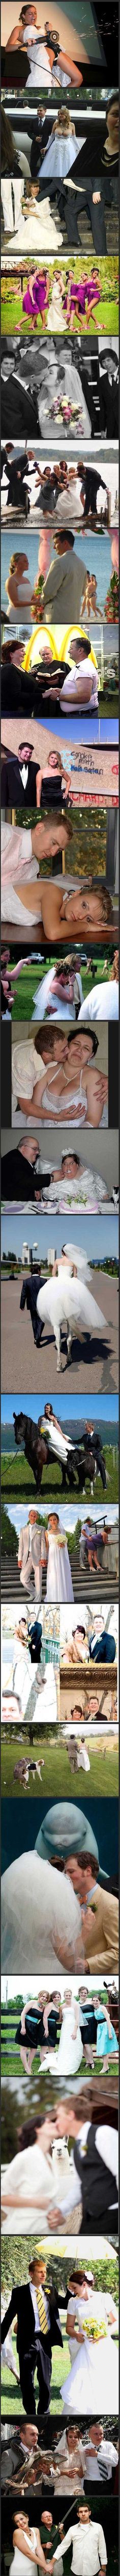 bahahaha bad wedding photos!! Do not replicate, Ber!!